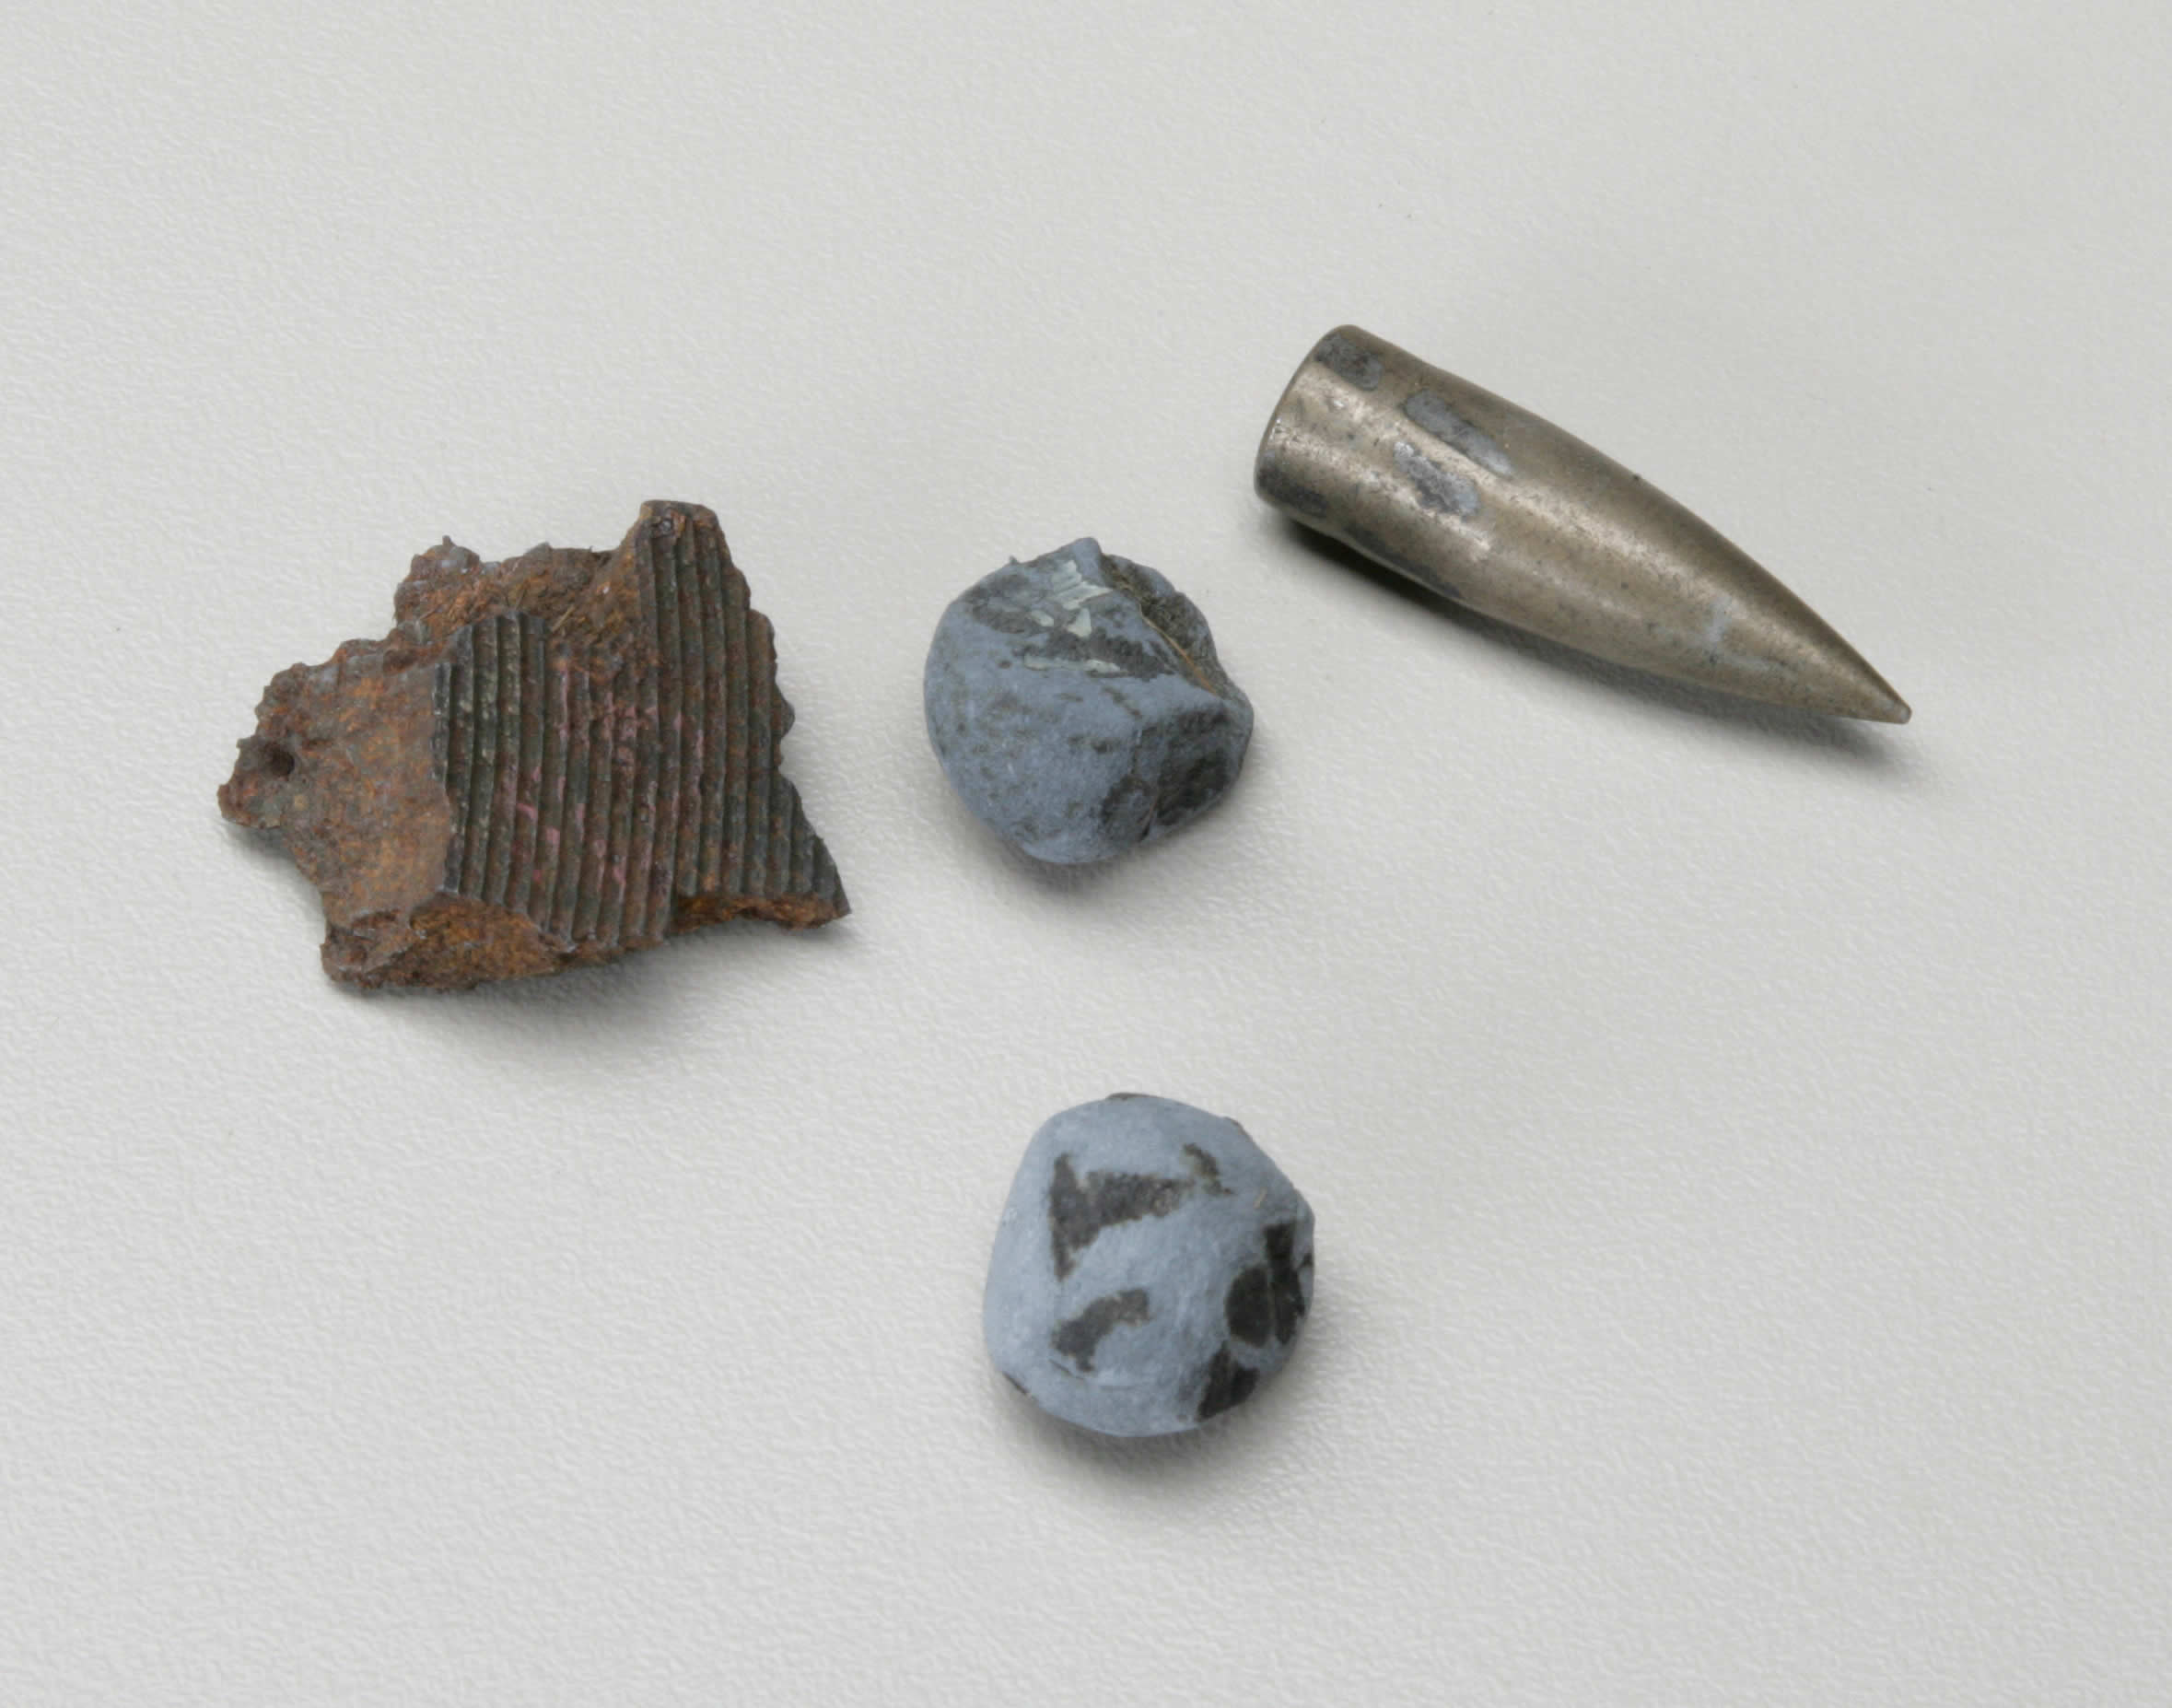 Shell Shrapnel Fragments and Bullets